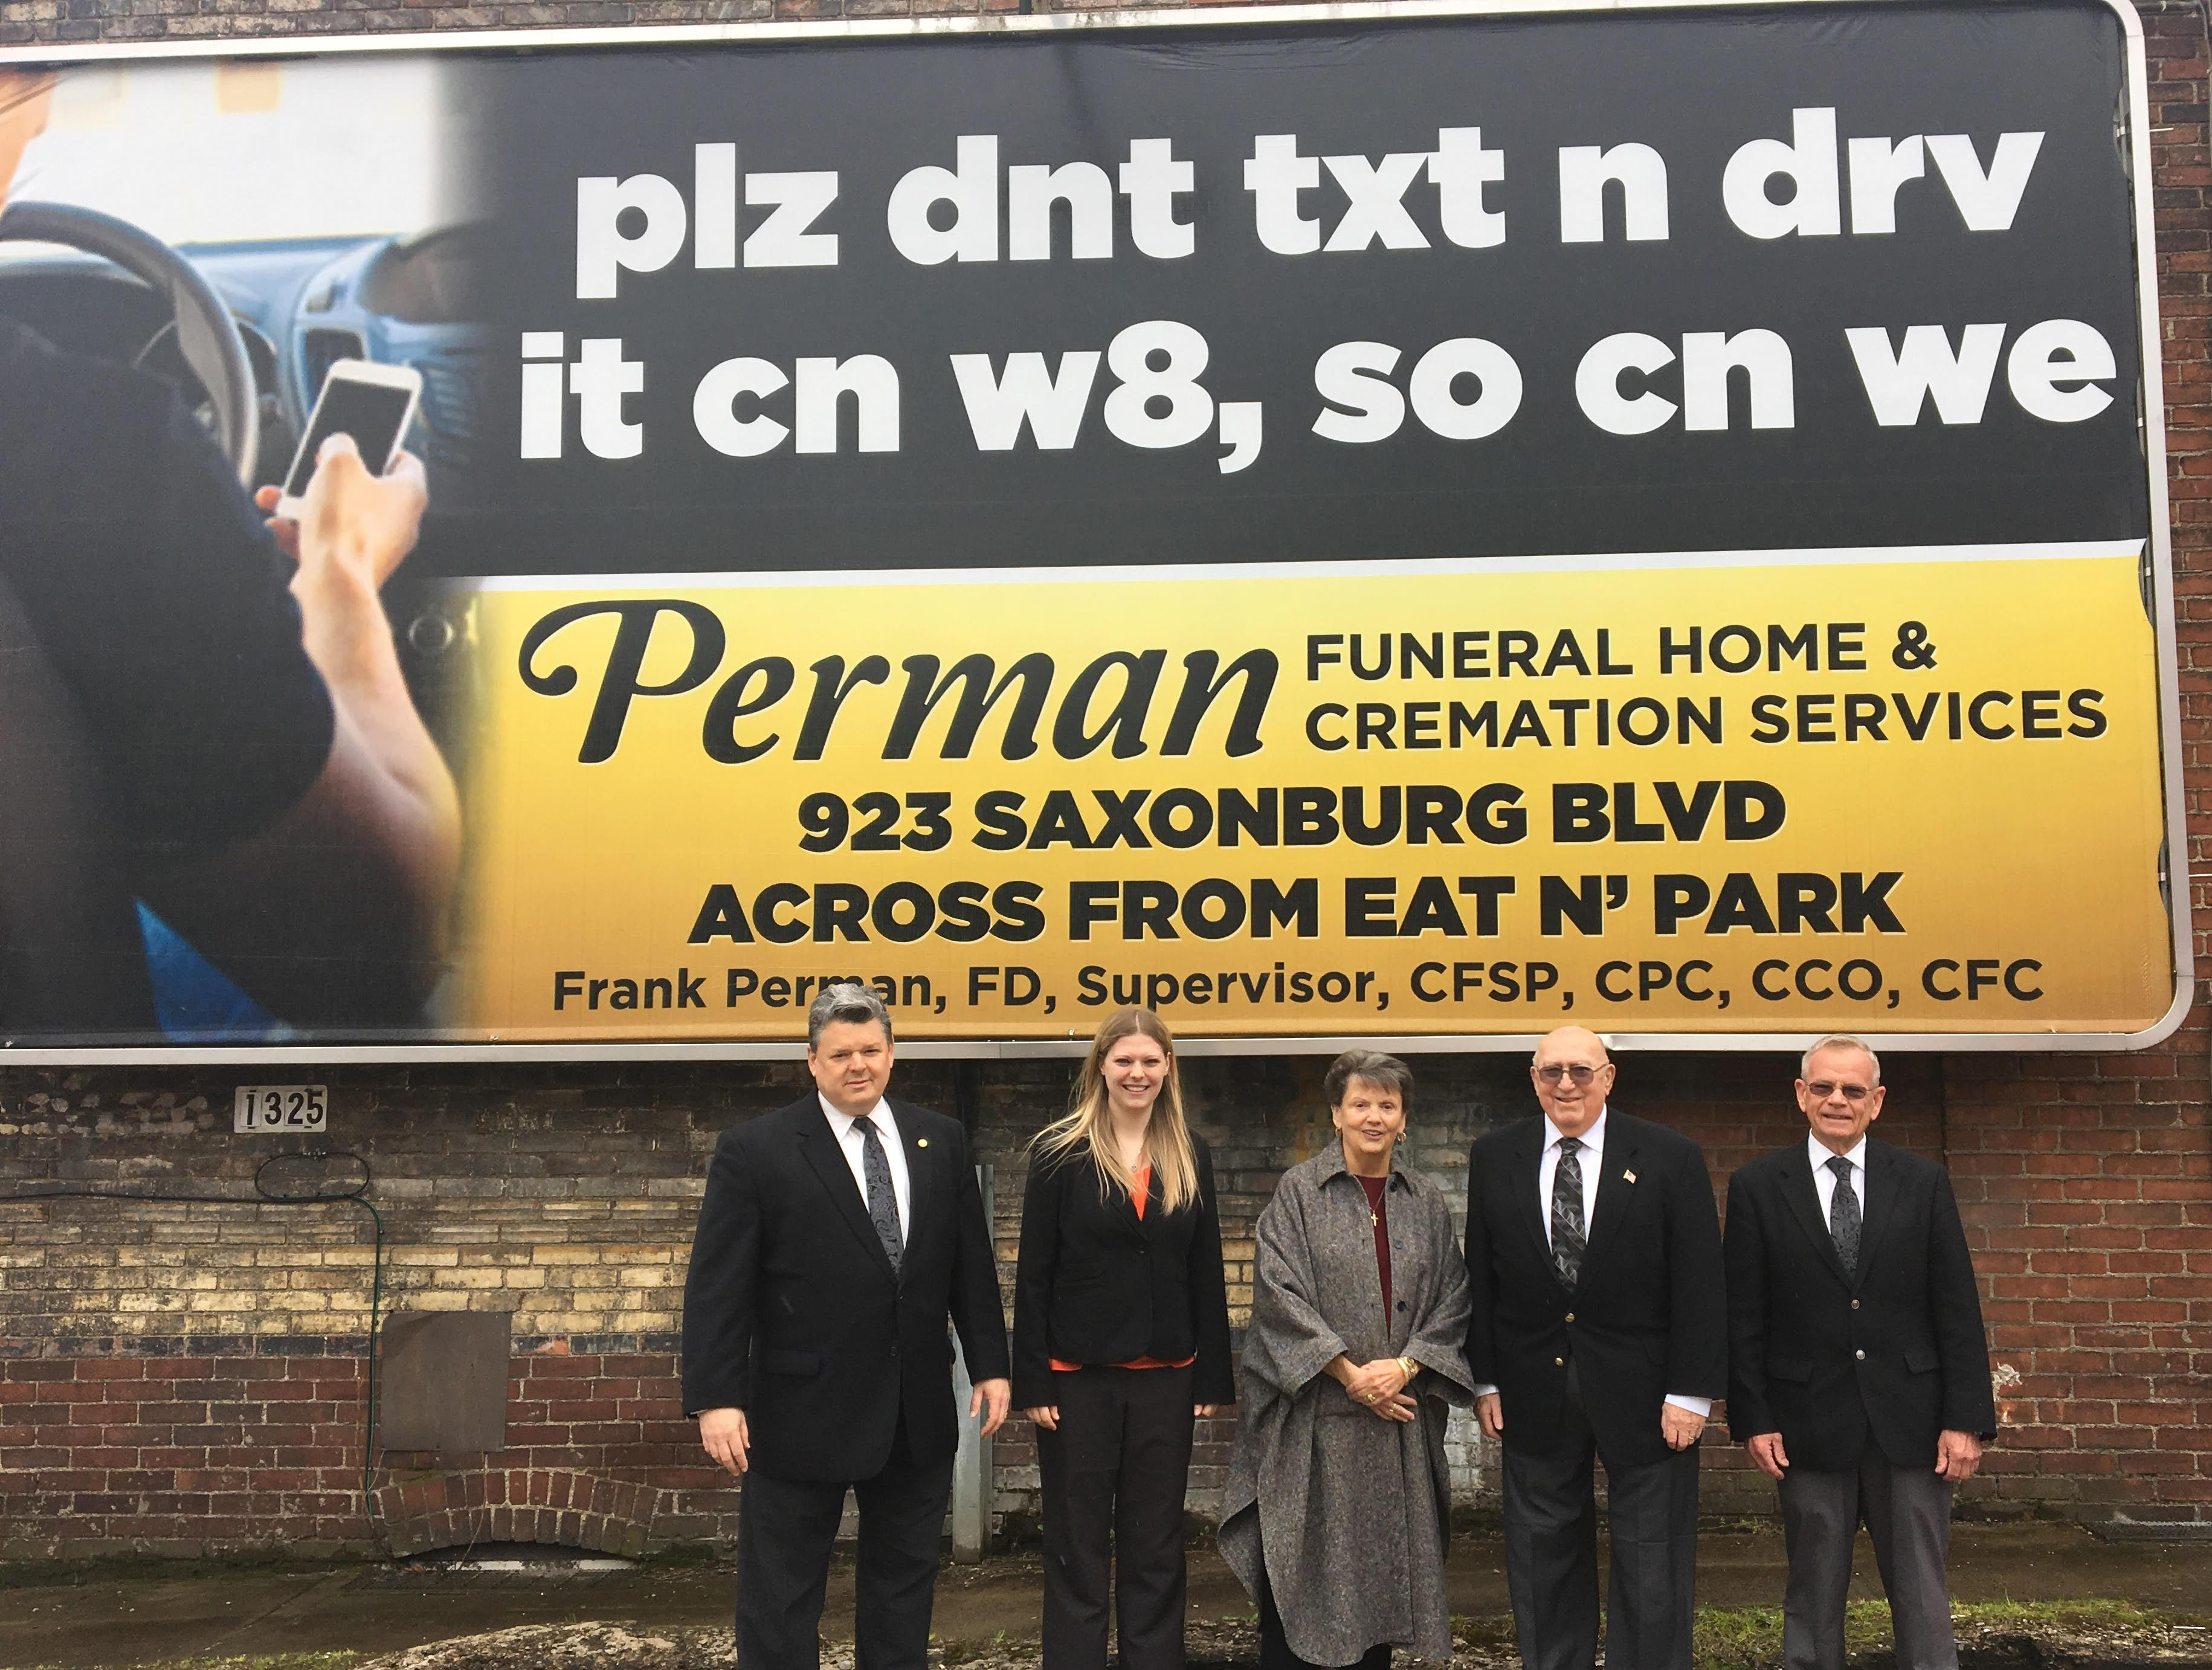 Perman Funeral Home and Cremation Services, Inc. image 2